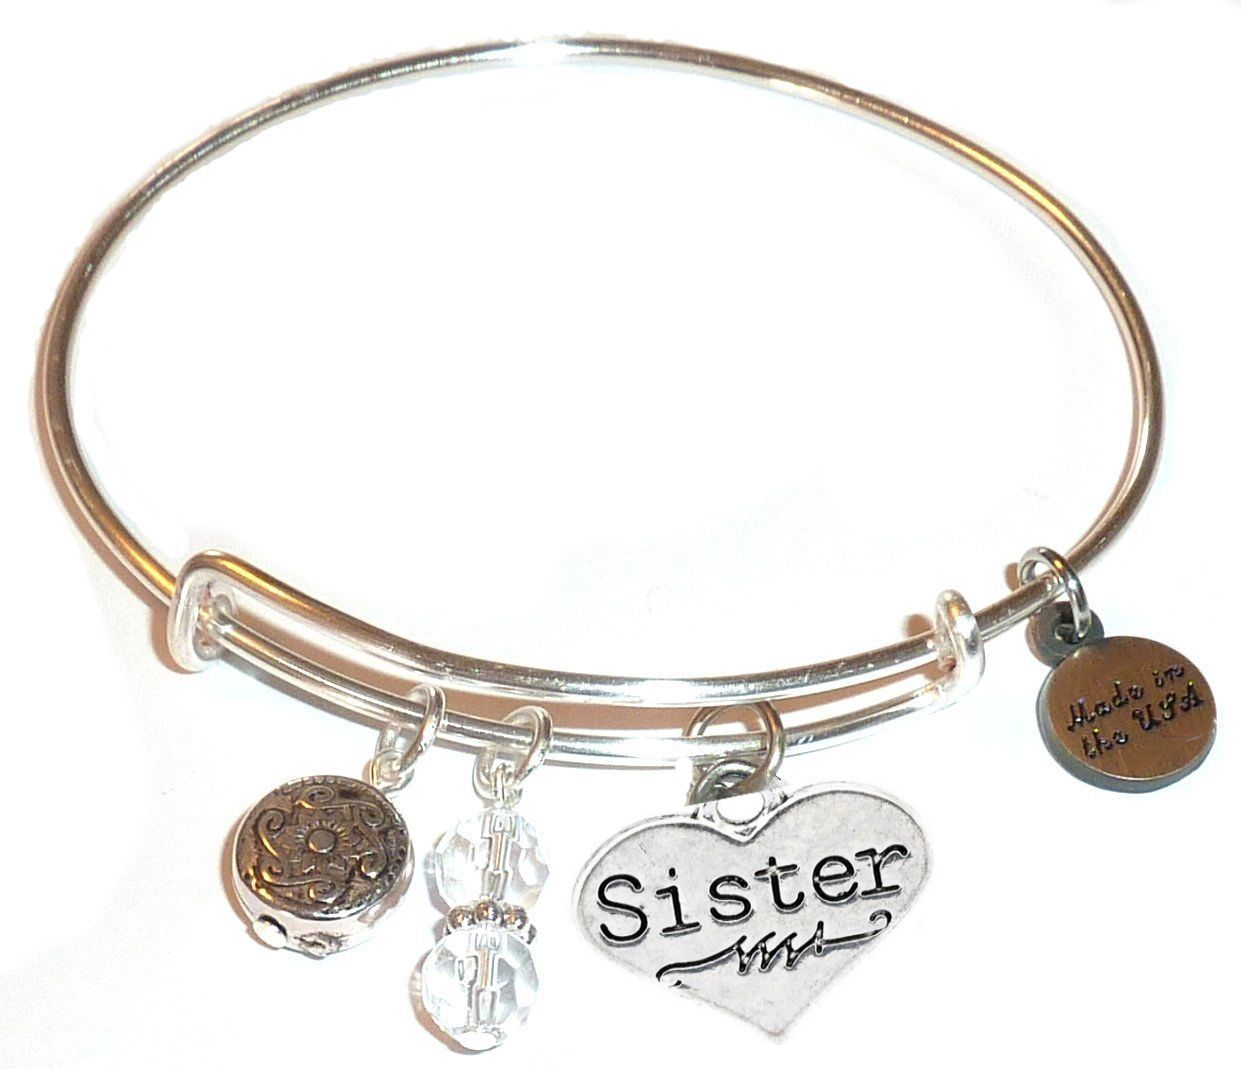 mother's day gift ideas - sister bangle bracelet